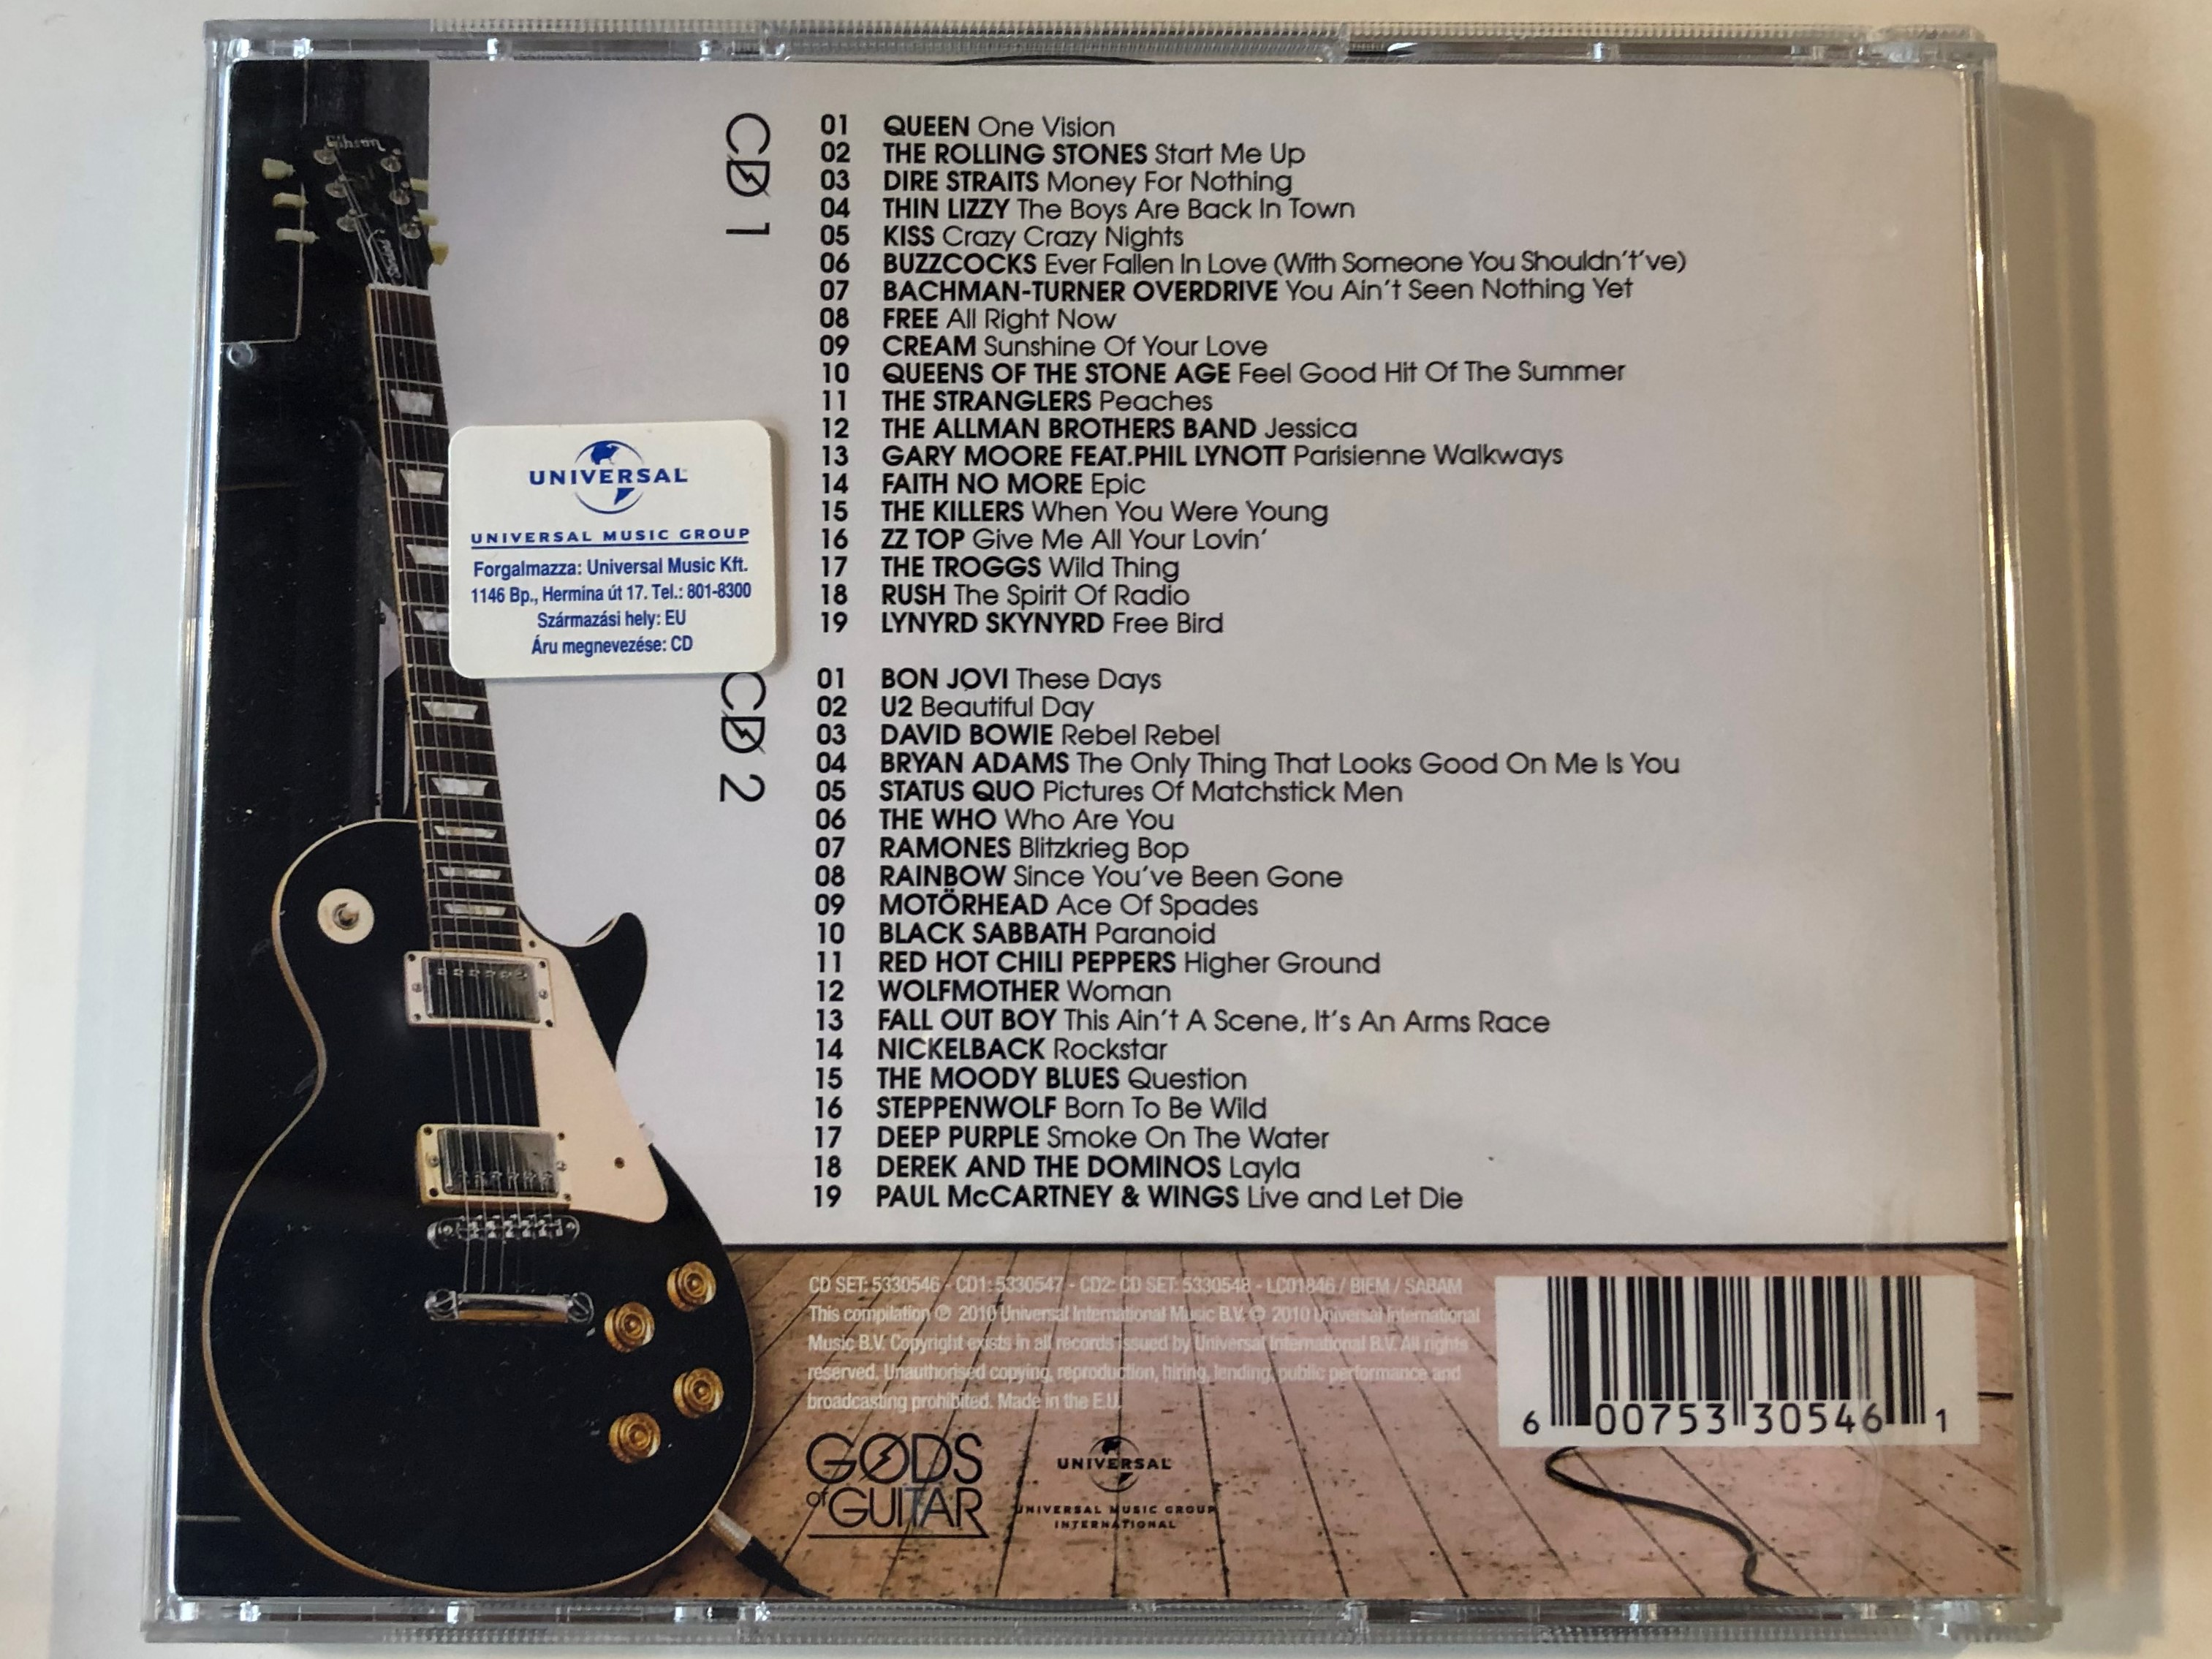 gods-of-guitar-featuring-the-rolling-stones-queen-u2-dire-straits-kiss-and-many-more-universal-2x-audio-cd-2010-5330546-2-.jpg